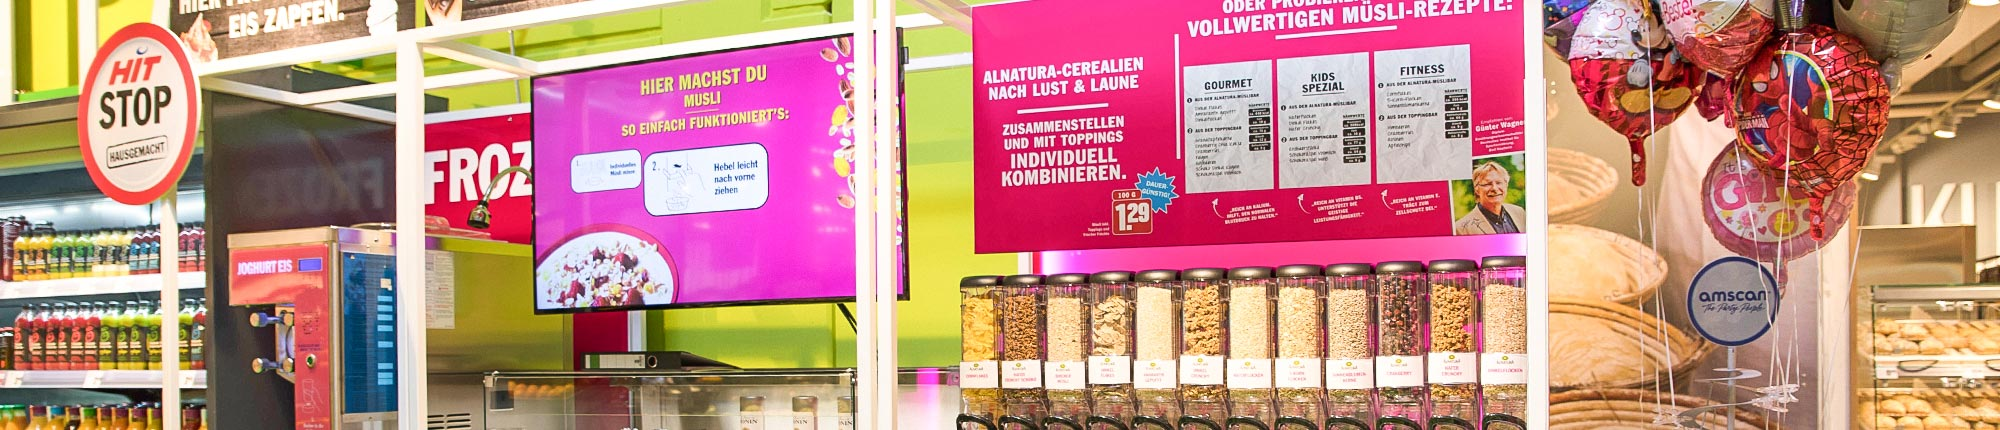 hit dohle digital signage bildschirm Frozen Joghurt panorama